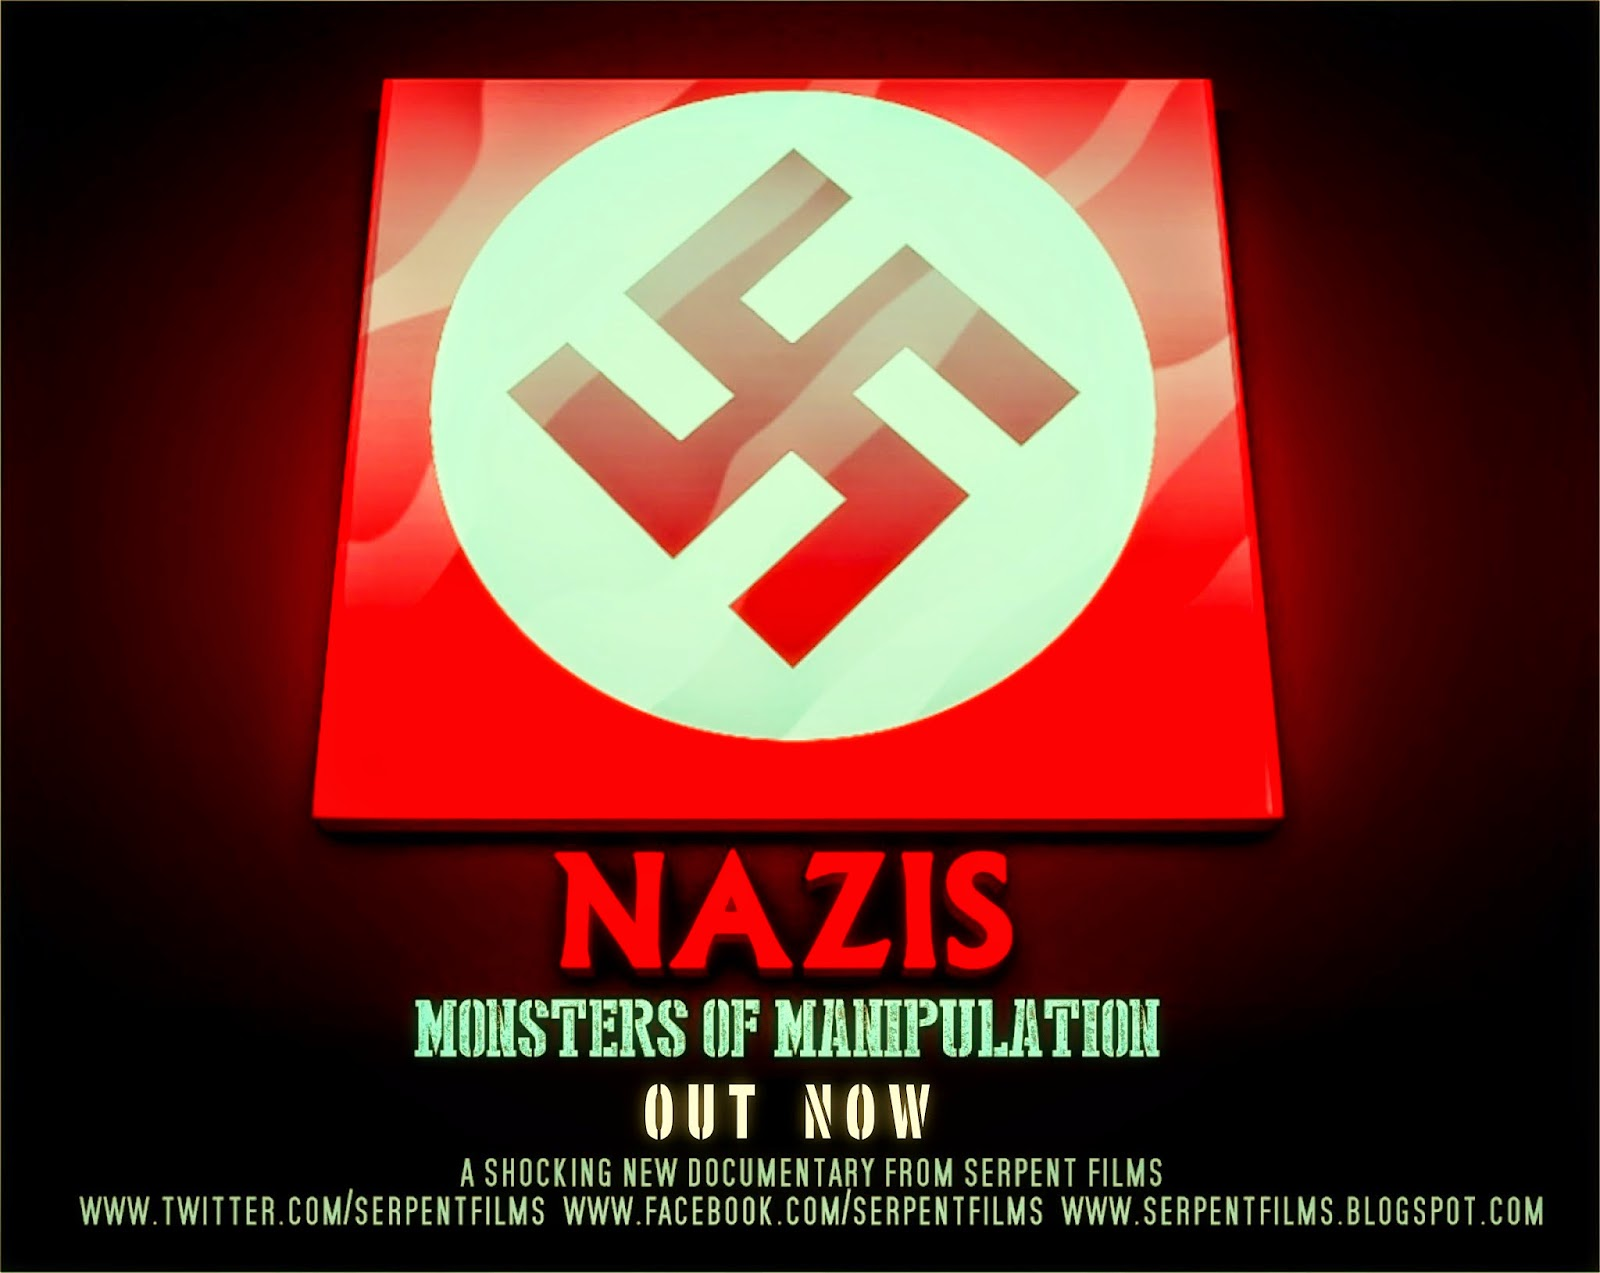 http://www.amazon.com/Nazis-Monsters-of-Manipulation/dp/B00KPY0GNC/ref=sr_1_1?ie=UTF8&qid=1401881819&sr=8-1&keywords=nazis+monsters+of+manipulation